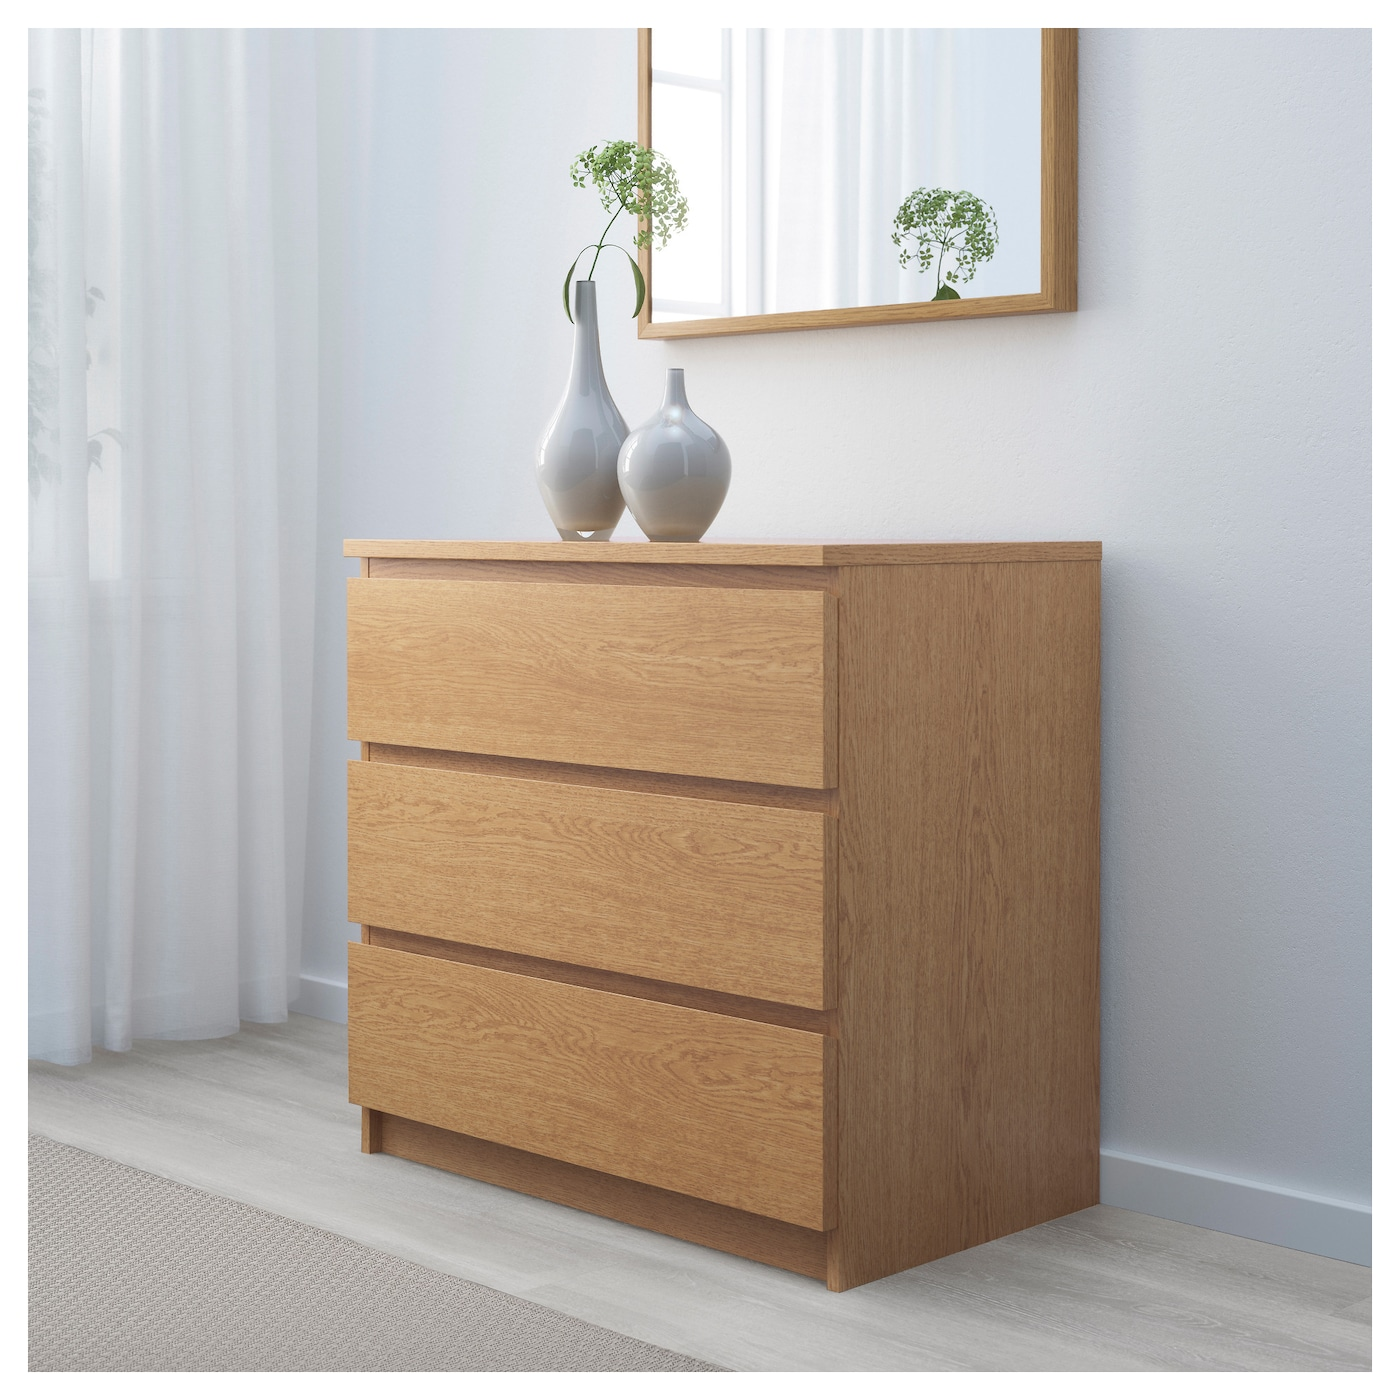 Ikea Malm Chest Of 3 Drawers Real Wood Veneer Will Make This Age